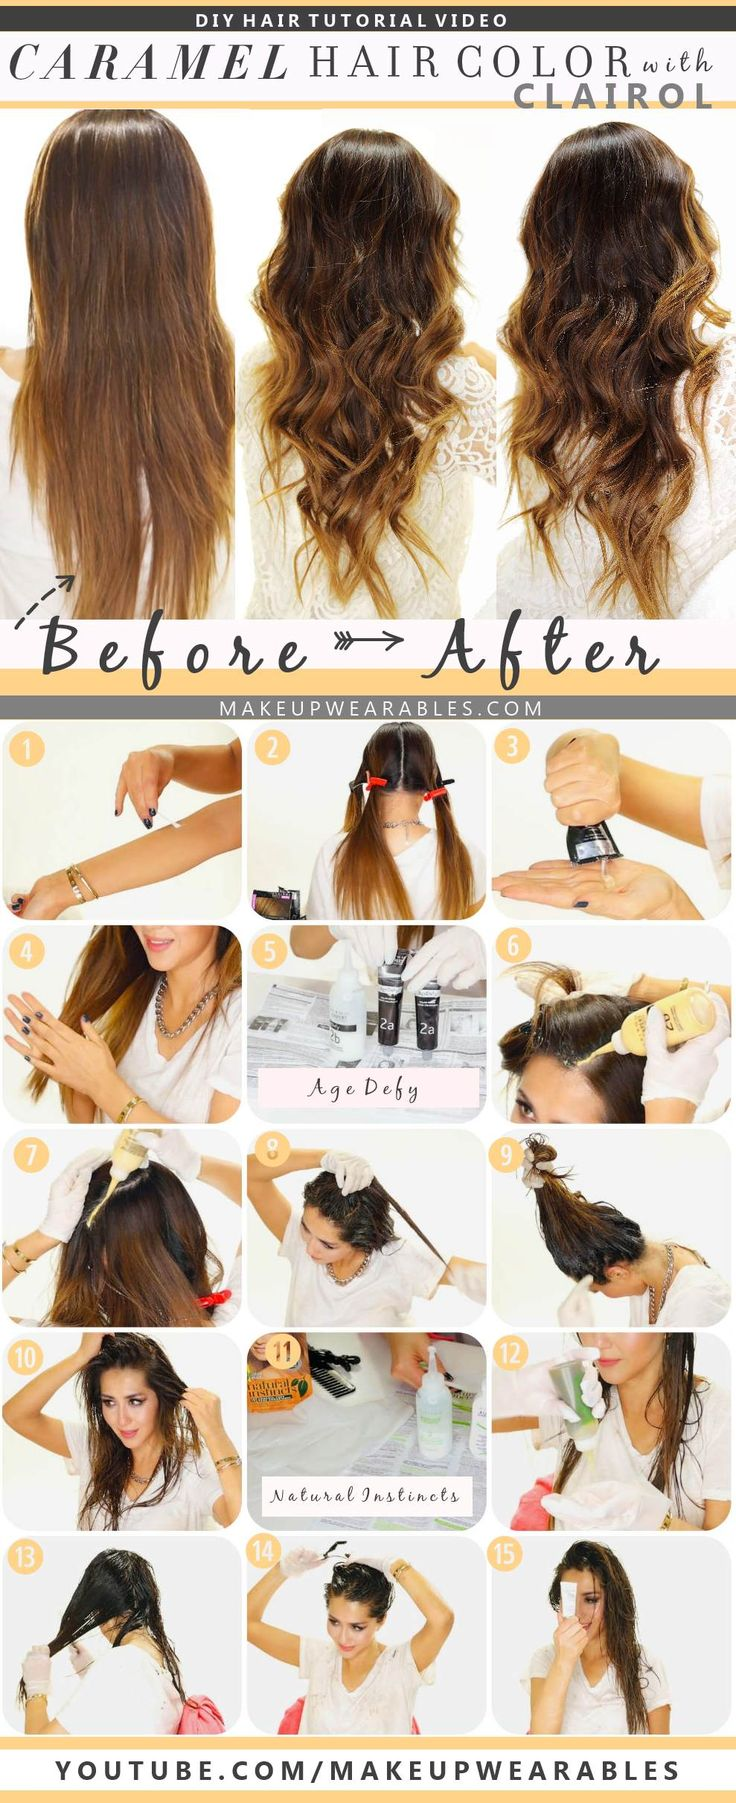 How to color your hair at home pictures